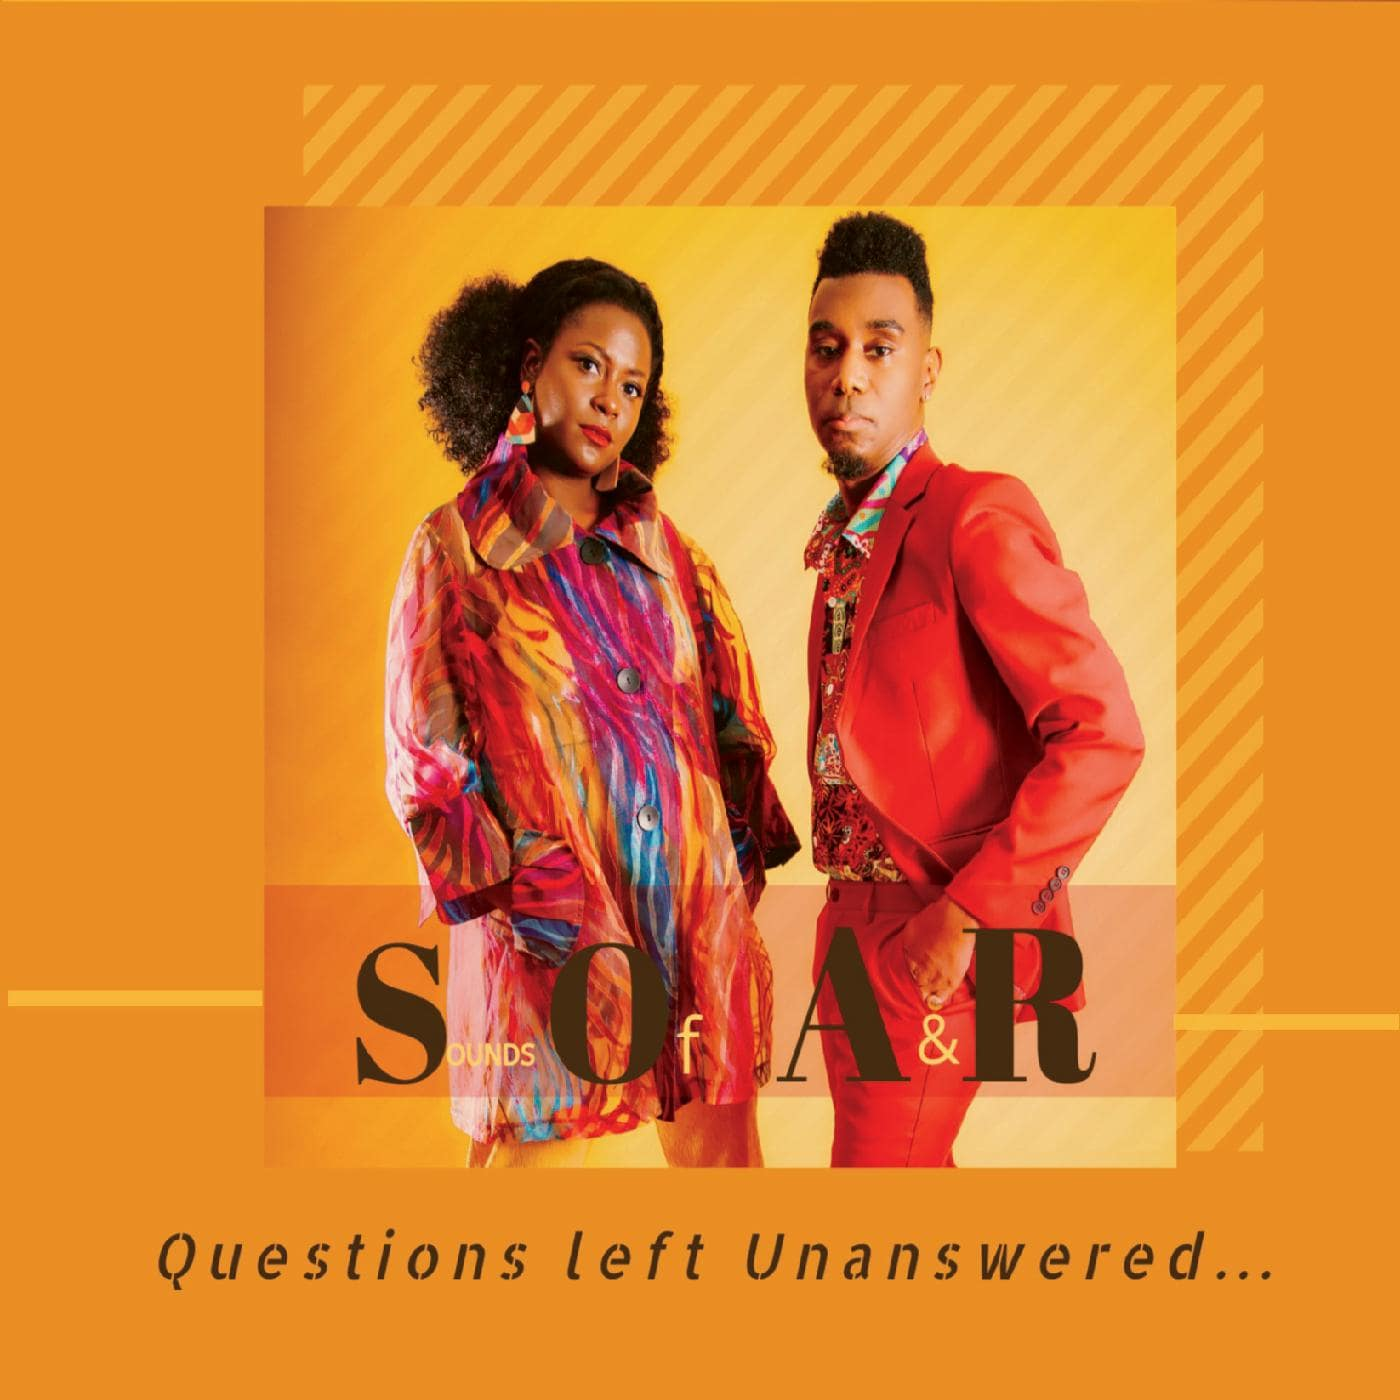 REVIEW: Sounds Of A&R's 'Questions Left Unanswered' – Last Row Music